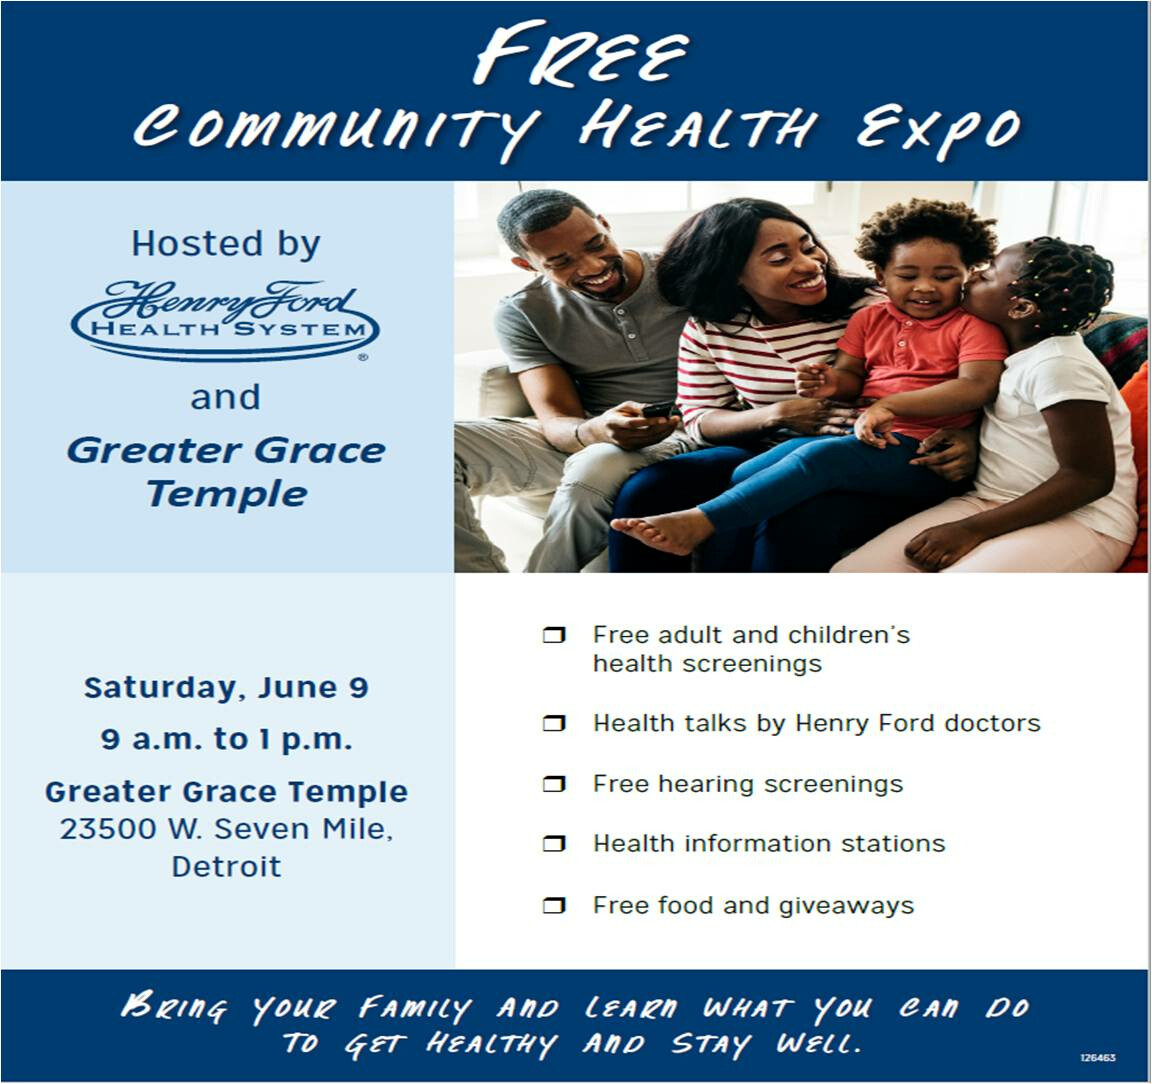 Henry Ford Health System FREE Community Health Expo